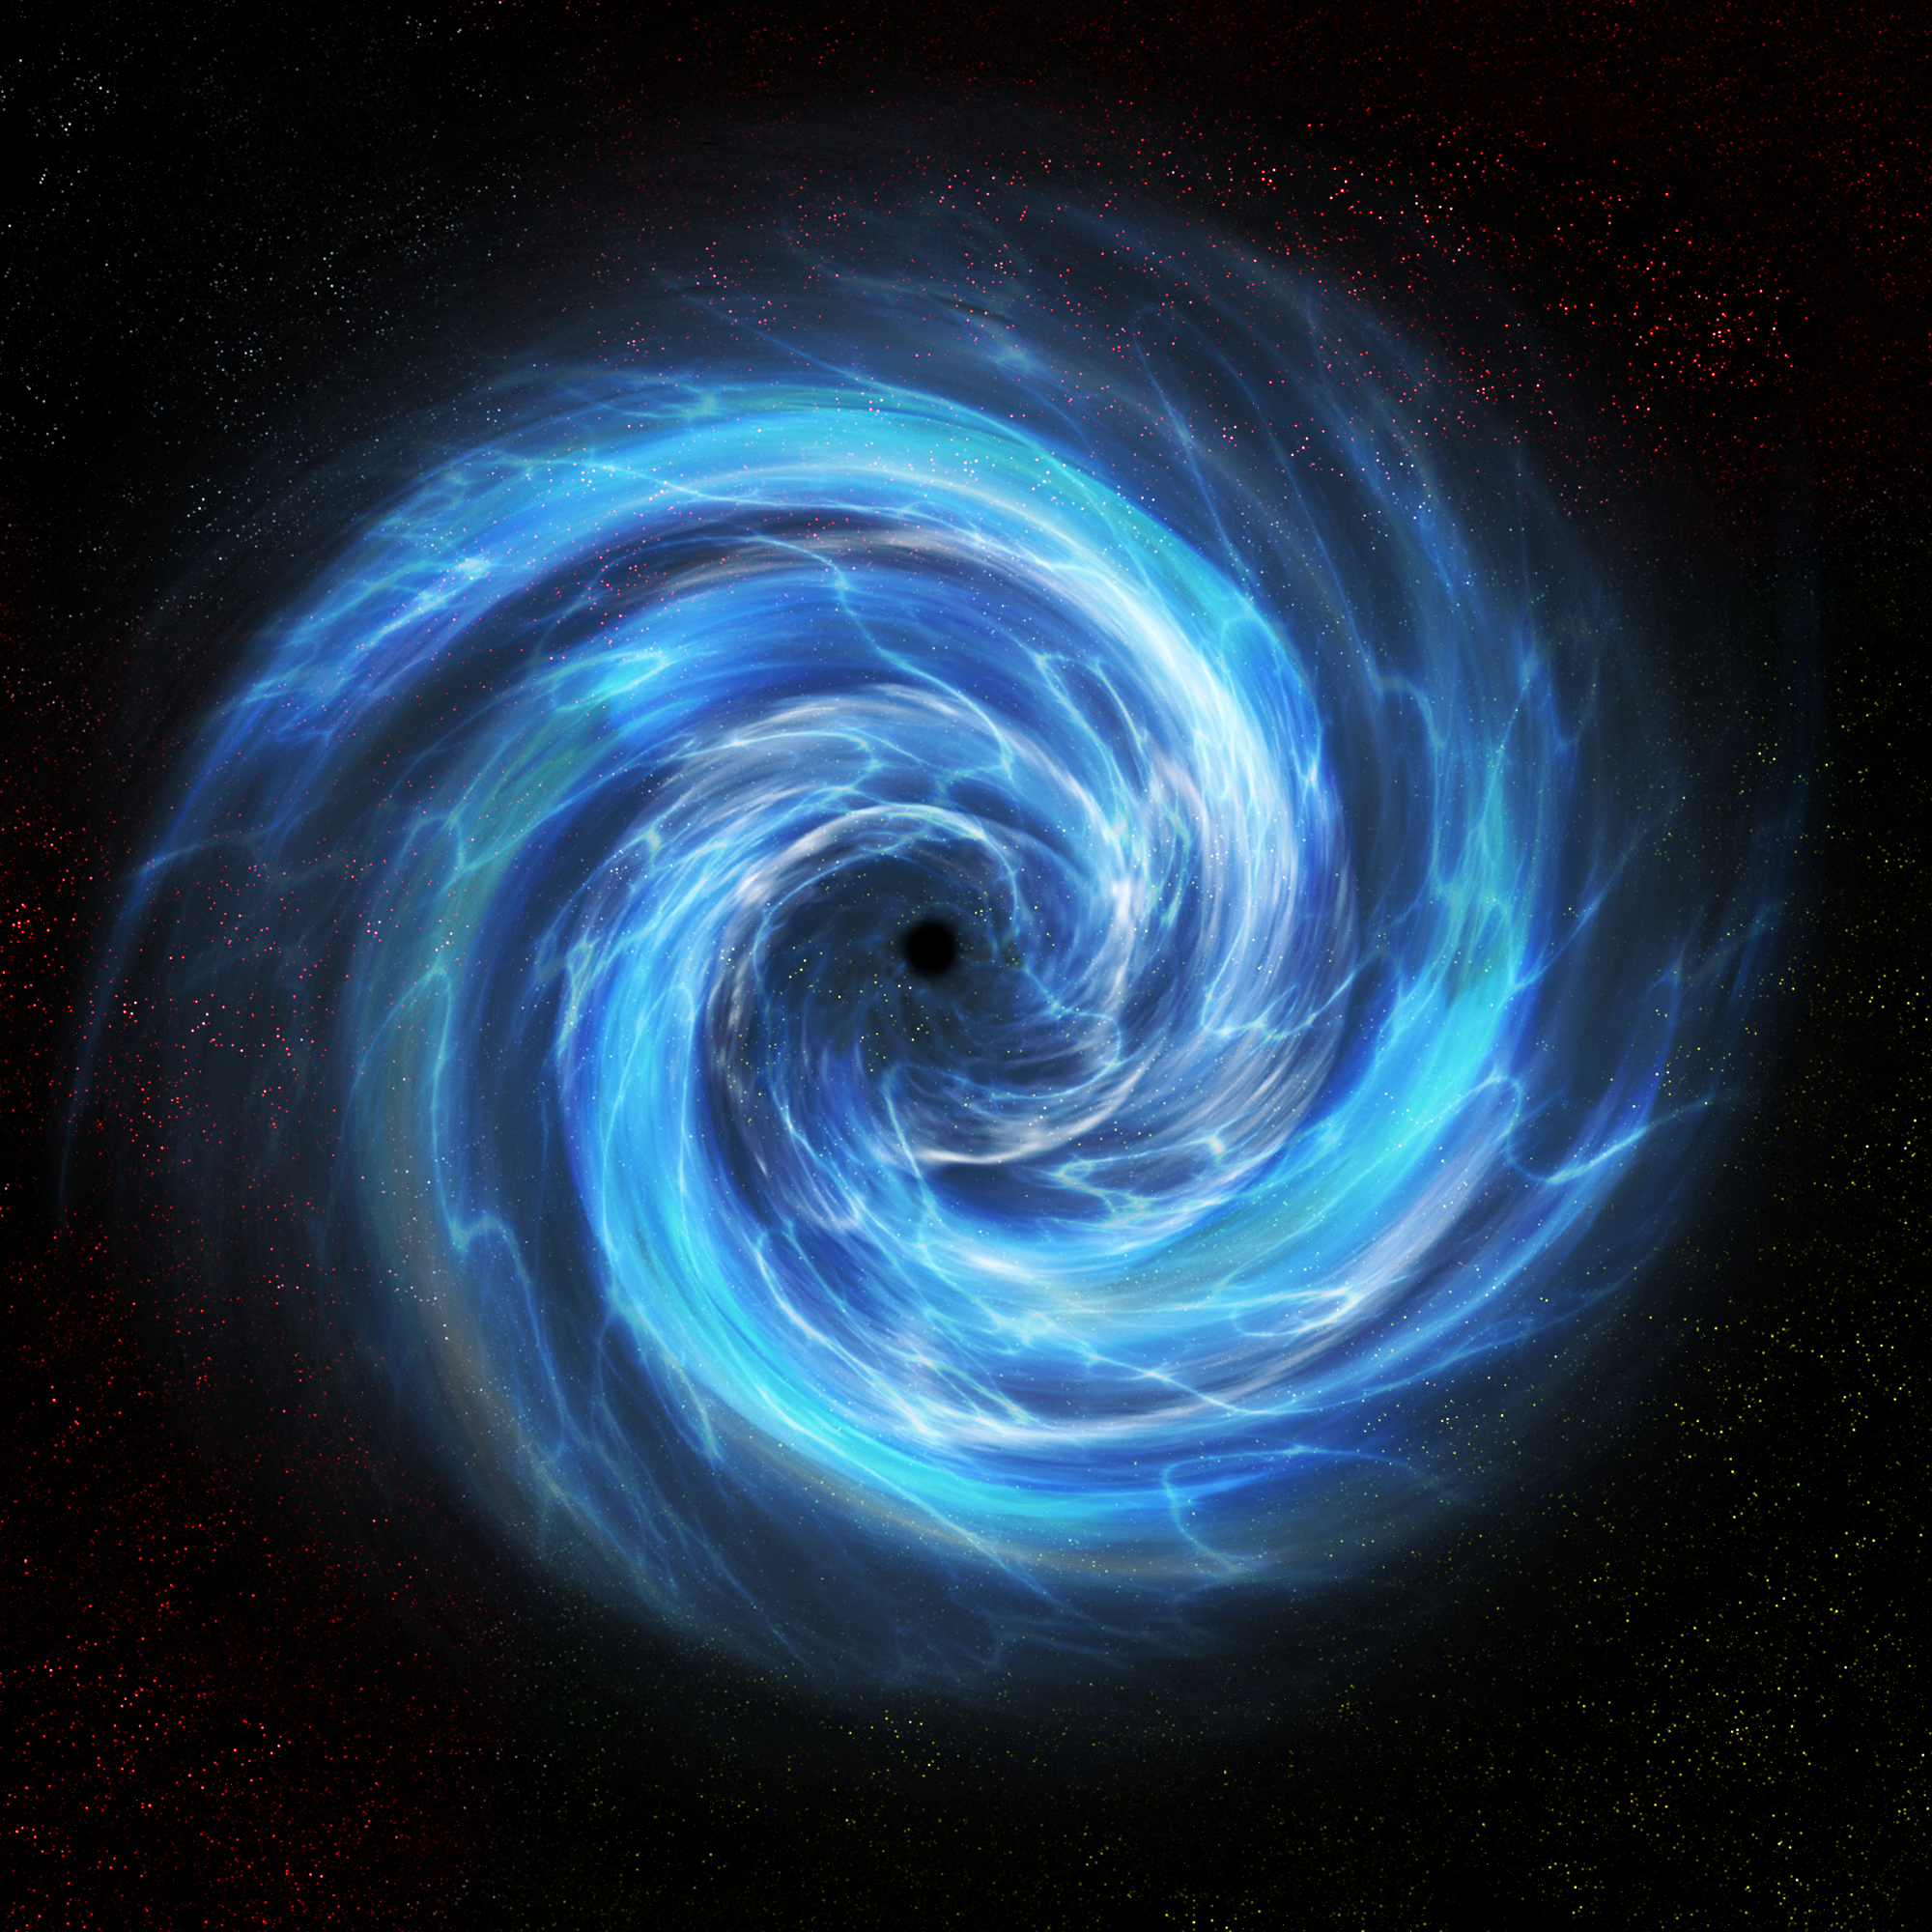 Wormhole Backgrounds (PC, Mobile, Gadgets) Compatible | 2000x2000 px